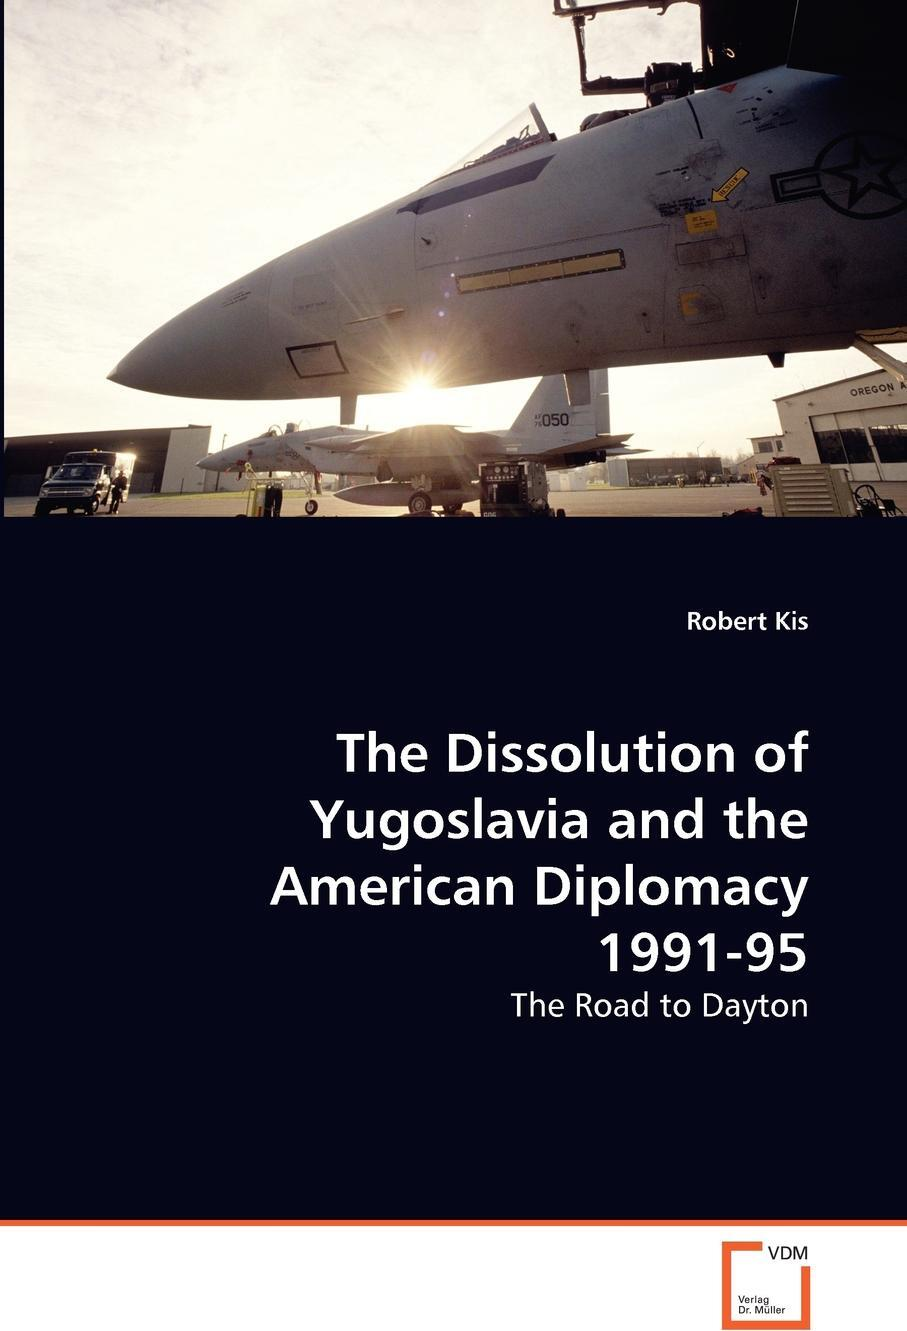 The Dissolution of Yugoslavia and the American Diplomacy 1991-95